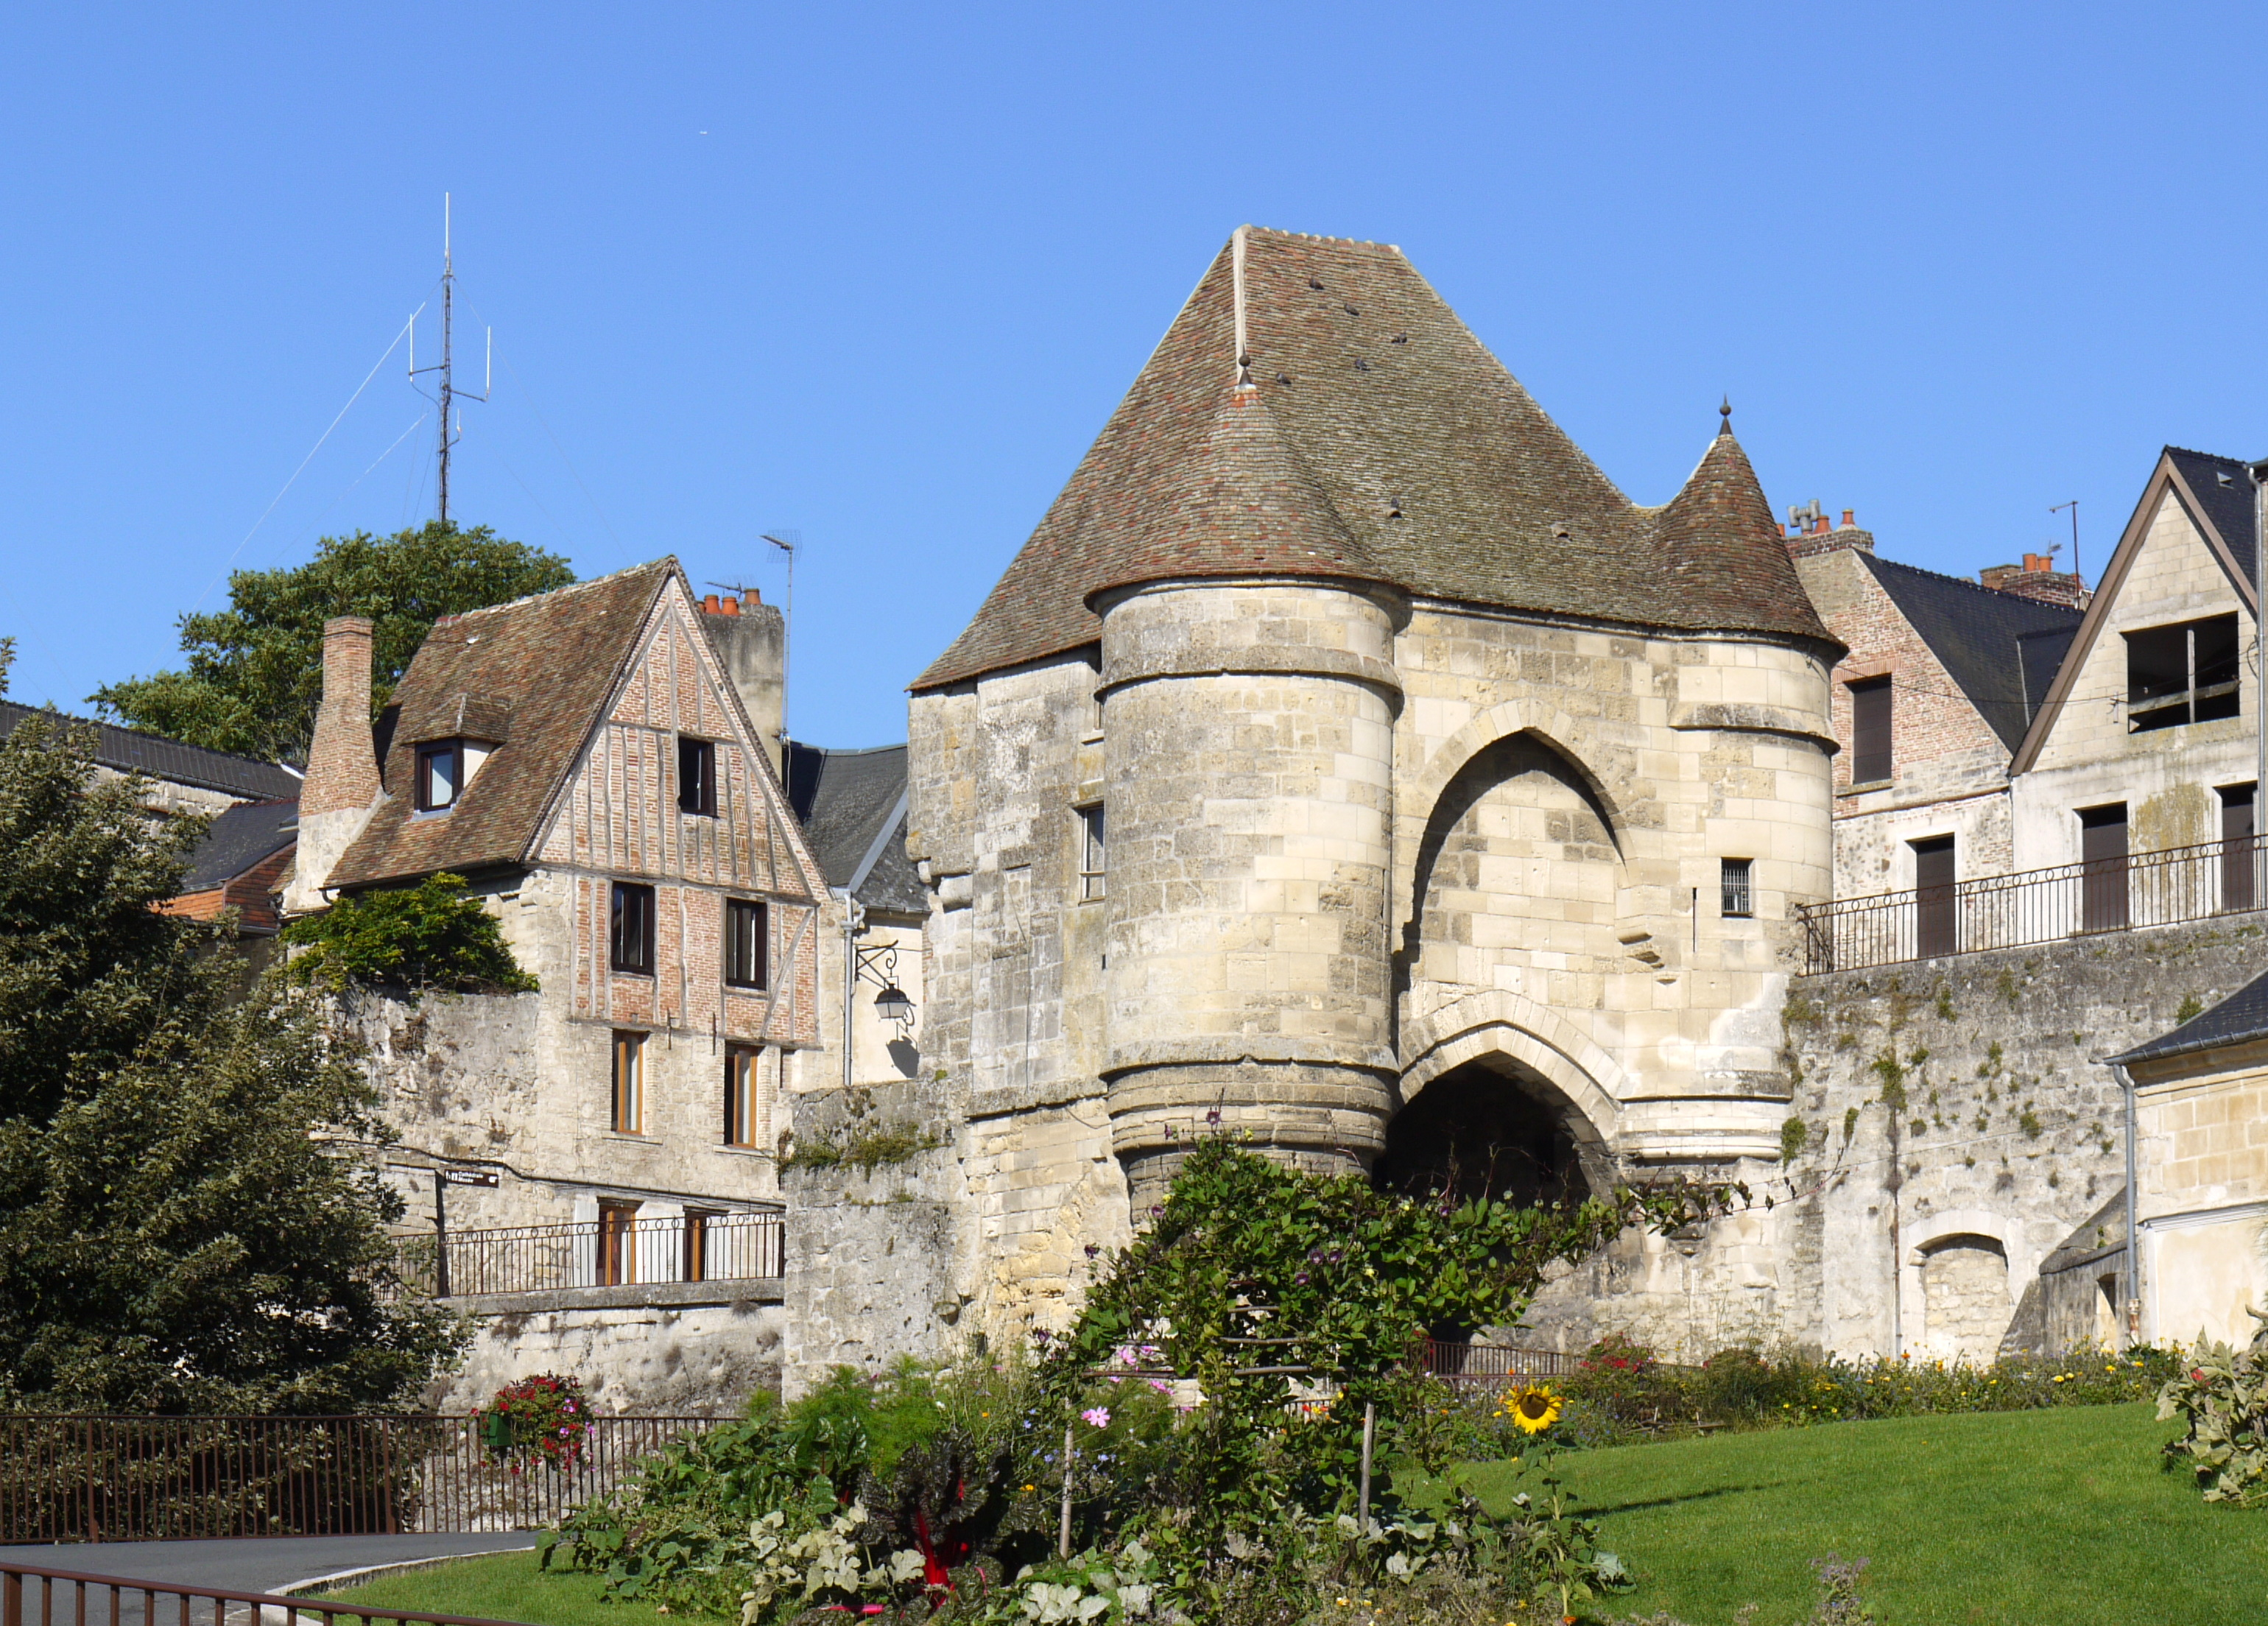 Ardon France  city photo : Original file ‎ 3,080 × 2,208 pixels, file size: 2.6 MB, MIME type ...